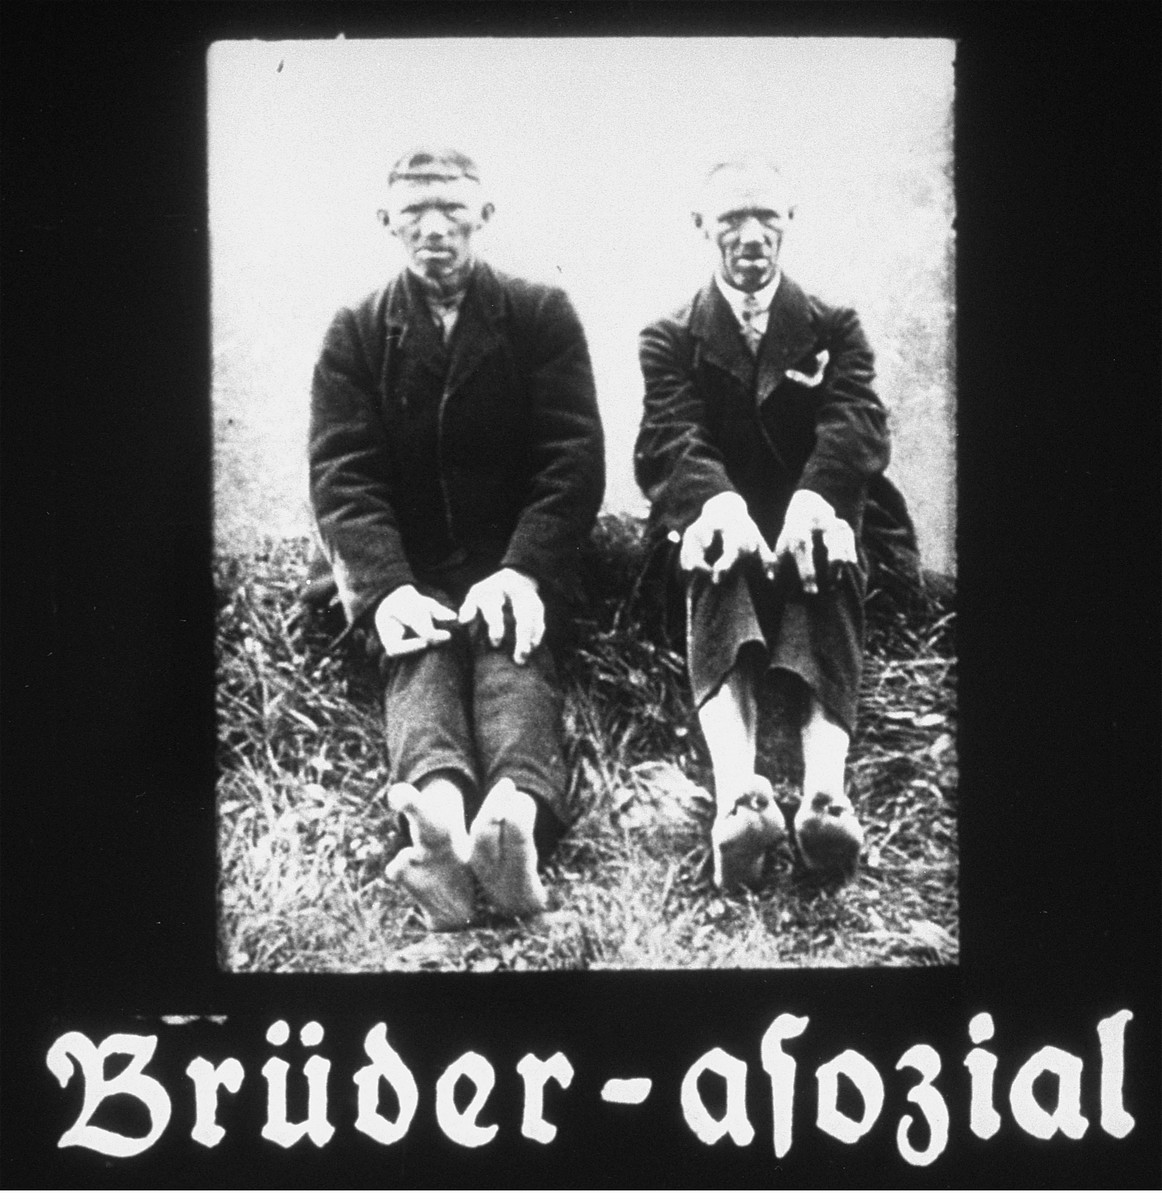 """Propaganda slide featuring two disabled brothers sitting in the grass.  The caption reads, """"Brothers-asocial."""""""